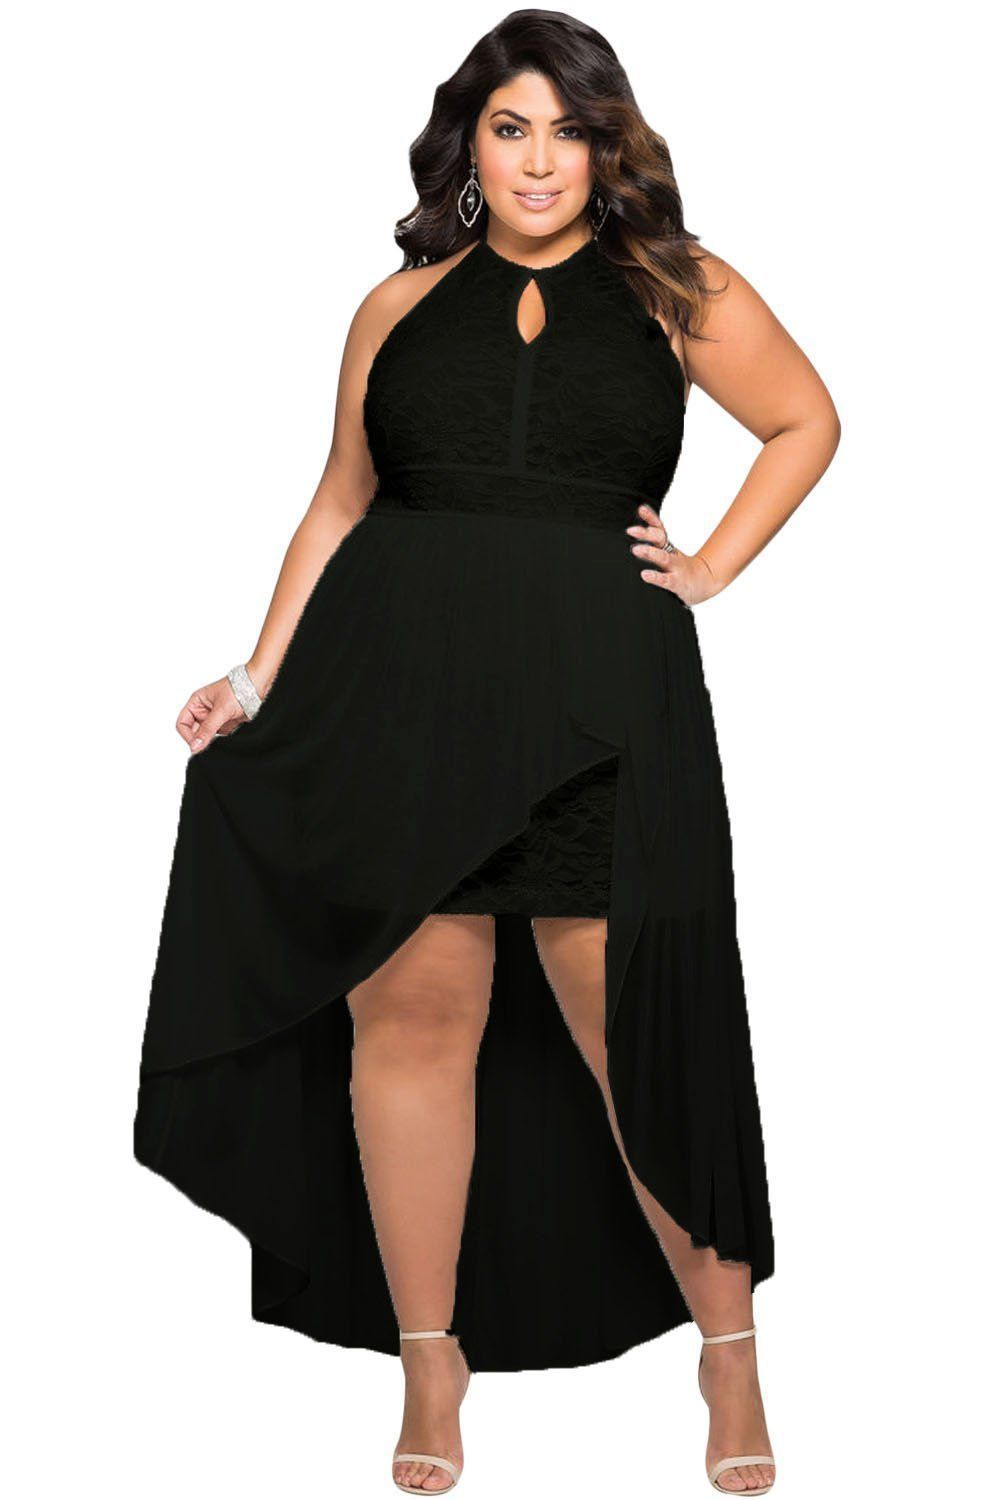 24fc9337428 Stylish Black Lace Special Occasion Plus Size Dress  #PlusSizeSpecialOccasionDressclothing